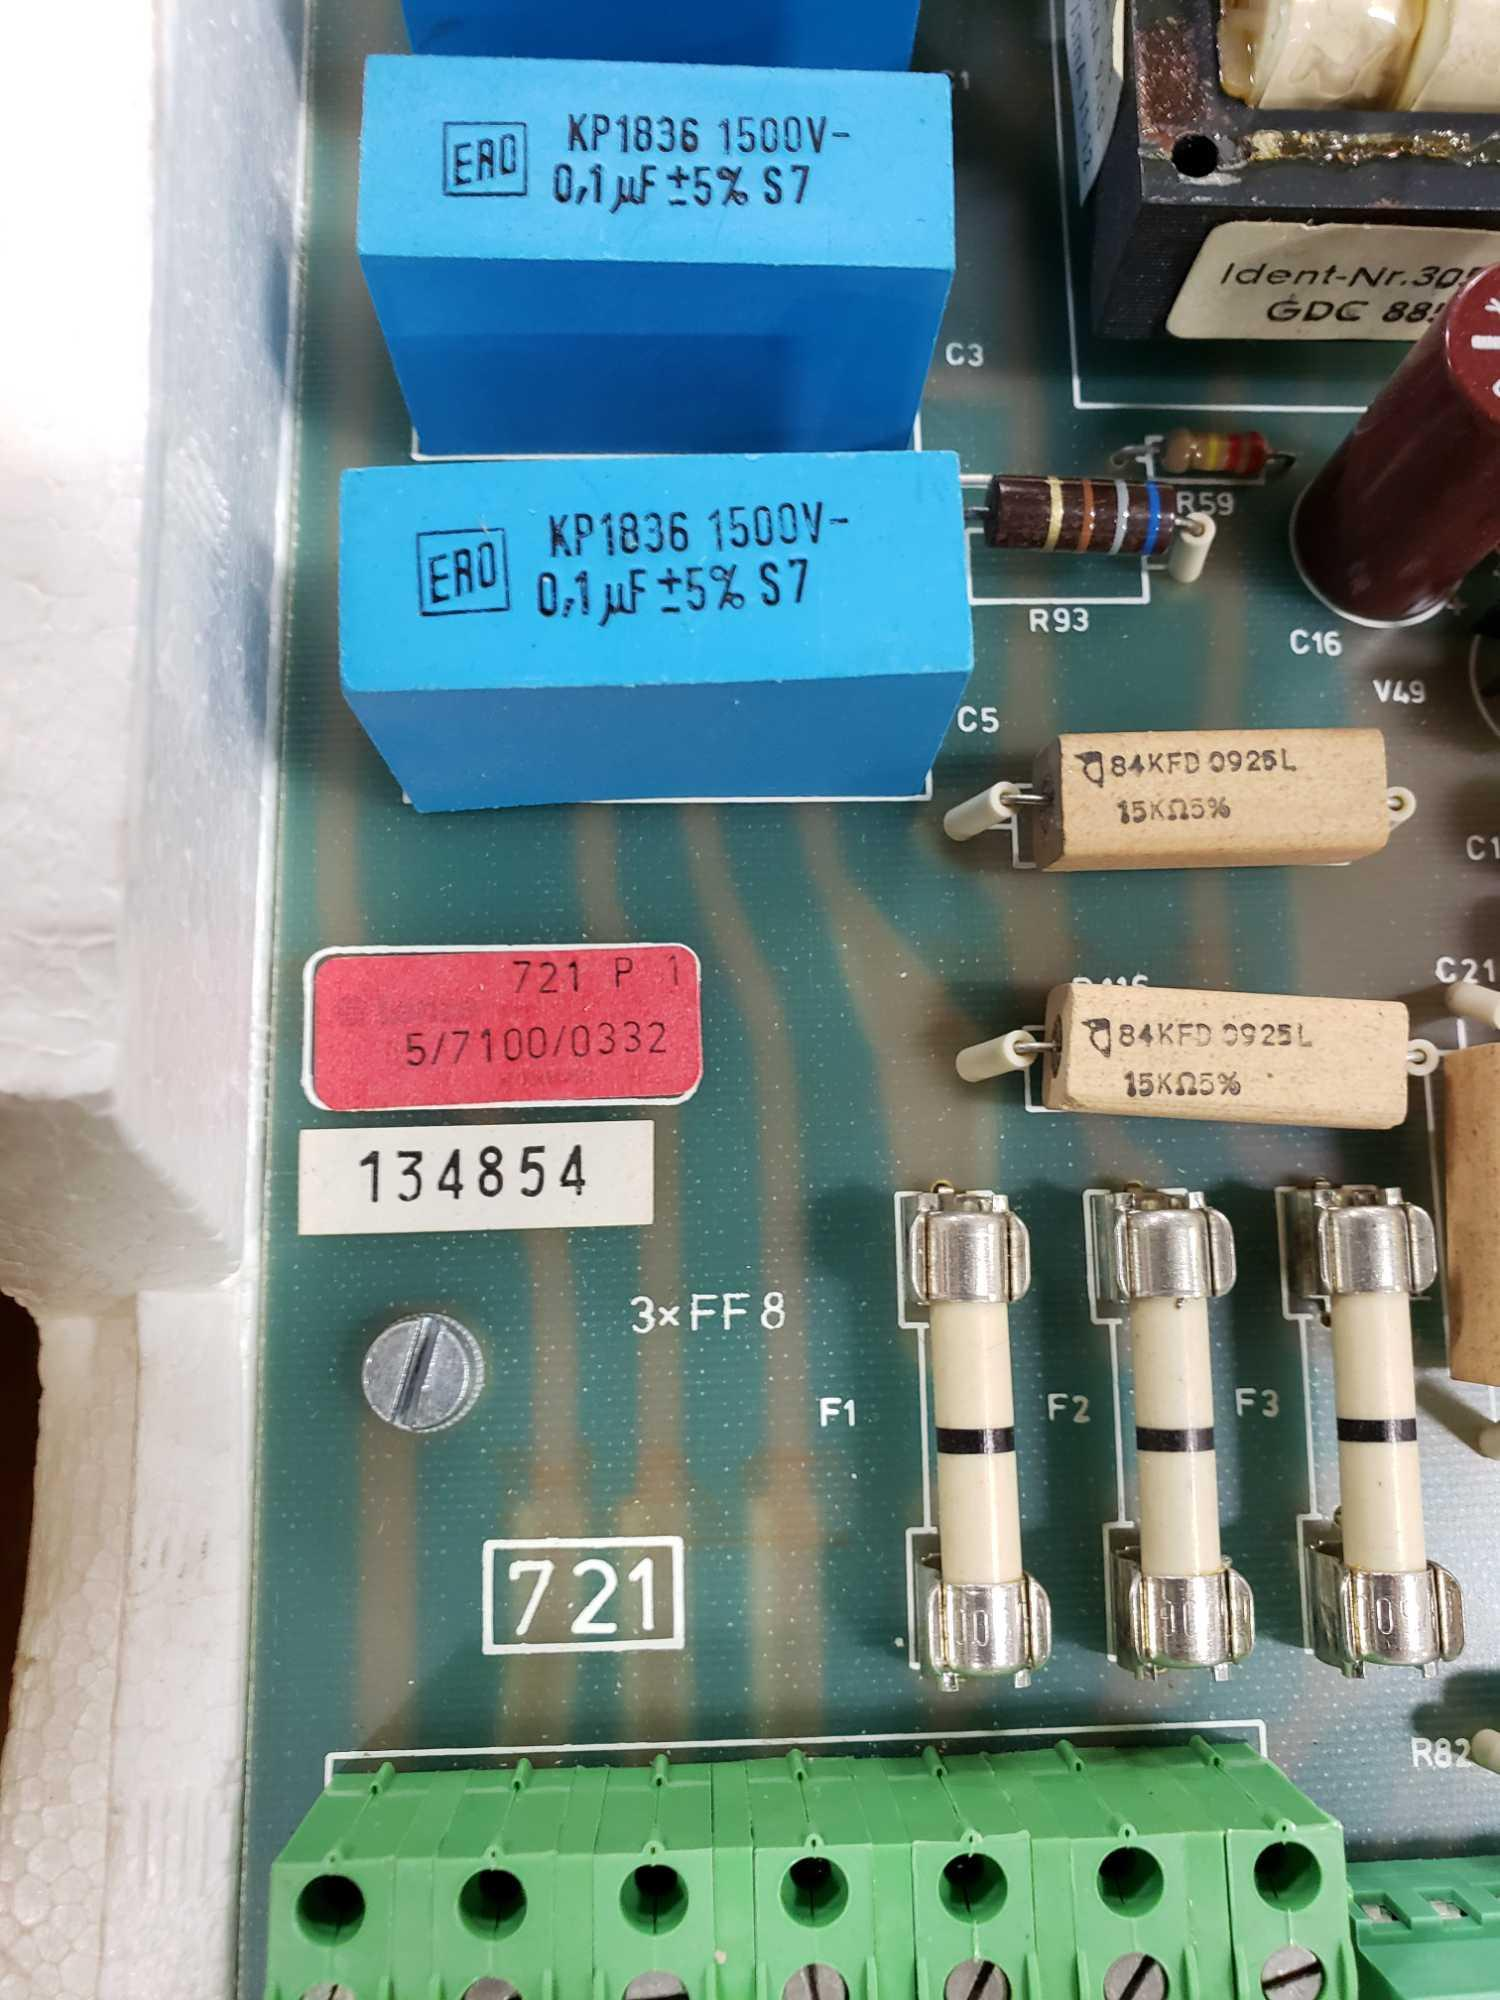 Stahlkontor control model 721-E2. New as pictured. - Image 2 of 3